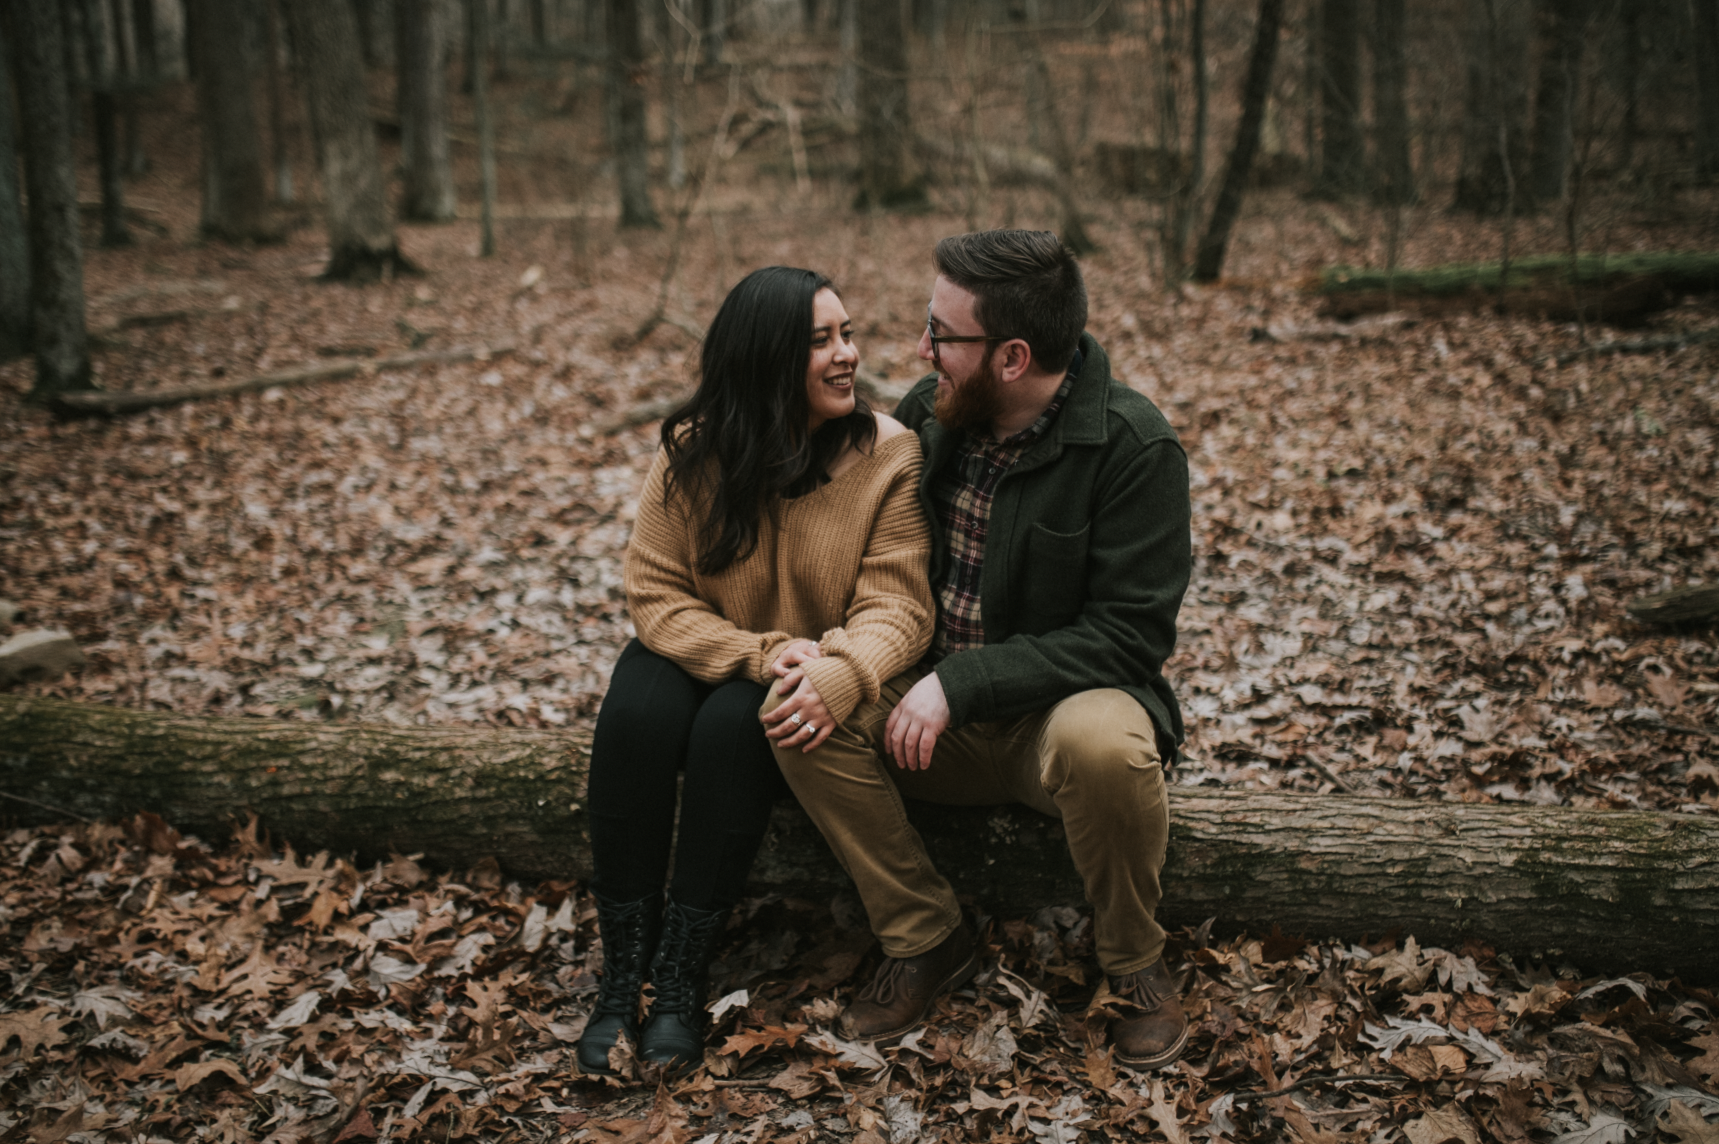 matt-natalia-winter-woods-engagement-session-pennsylvania-wedding-photographer-20